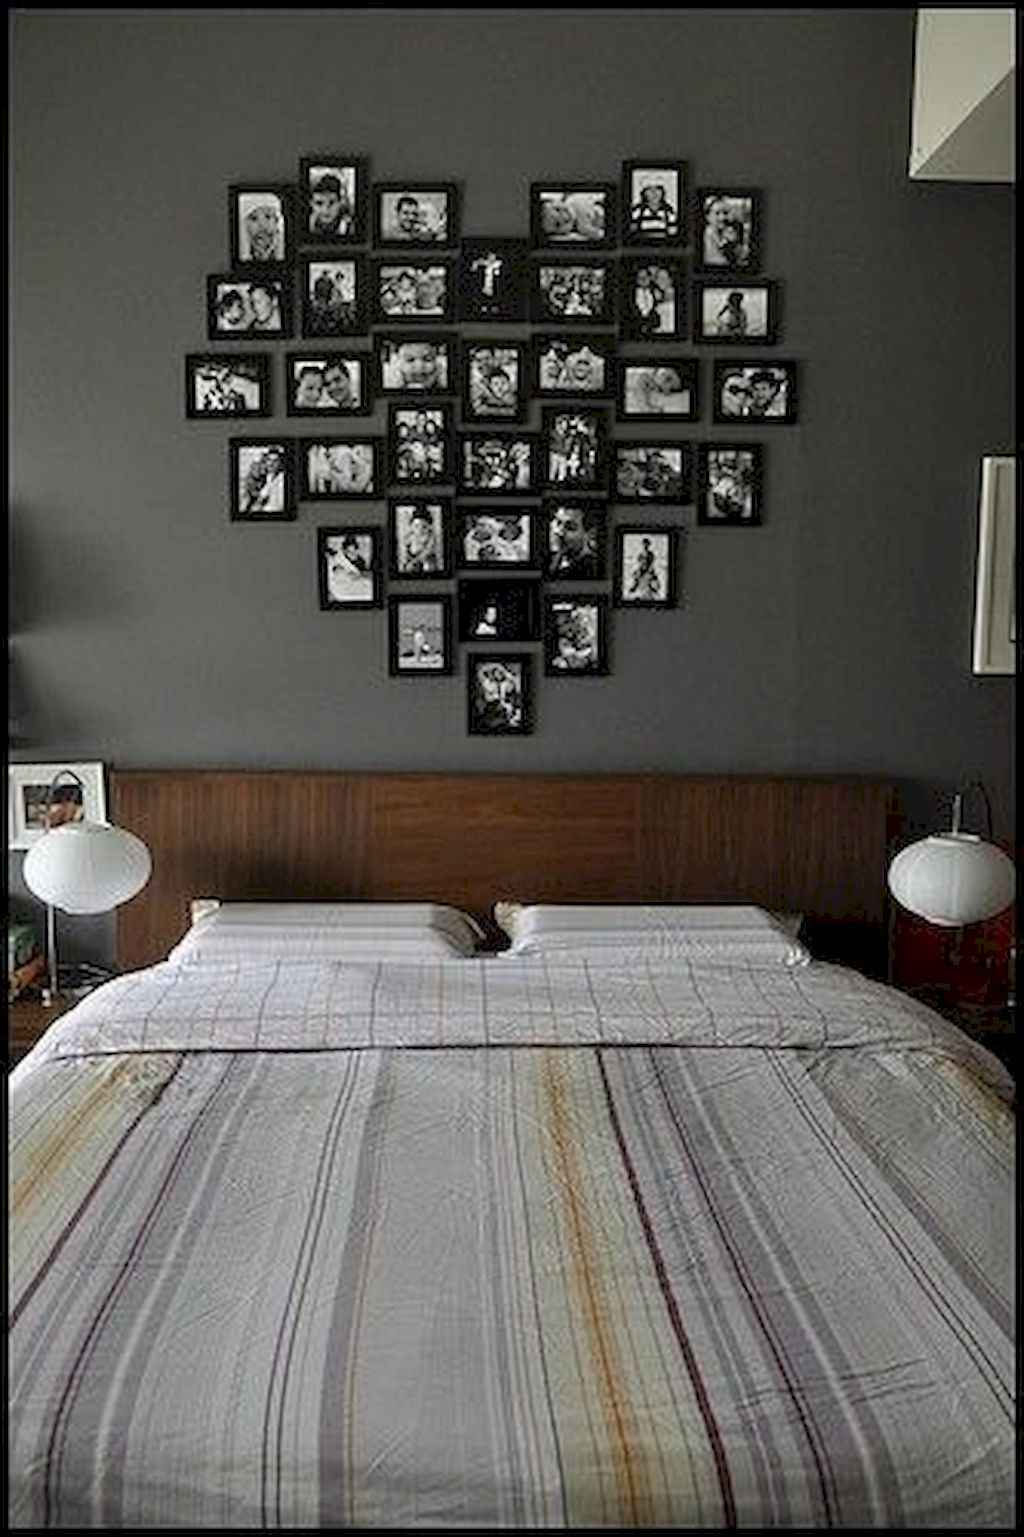 Couples first apartment decorating ideas (80)